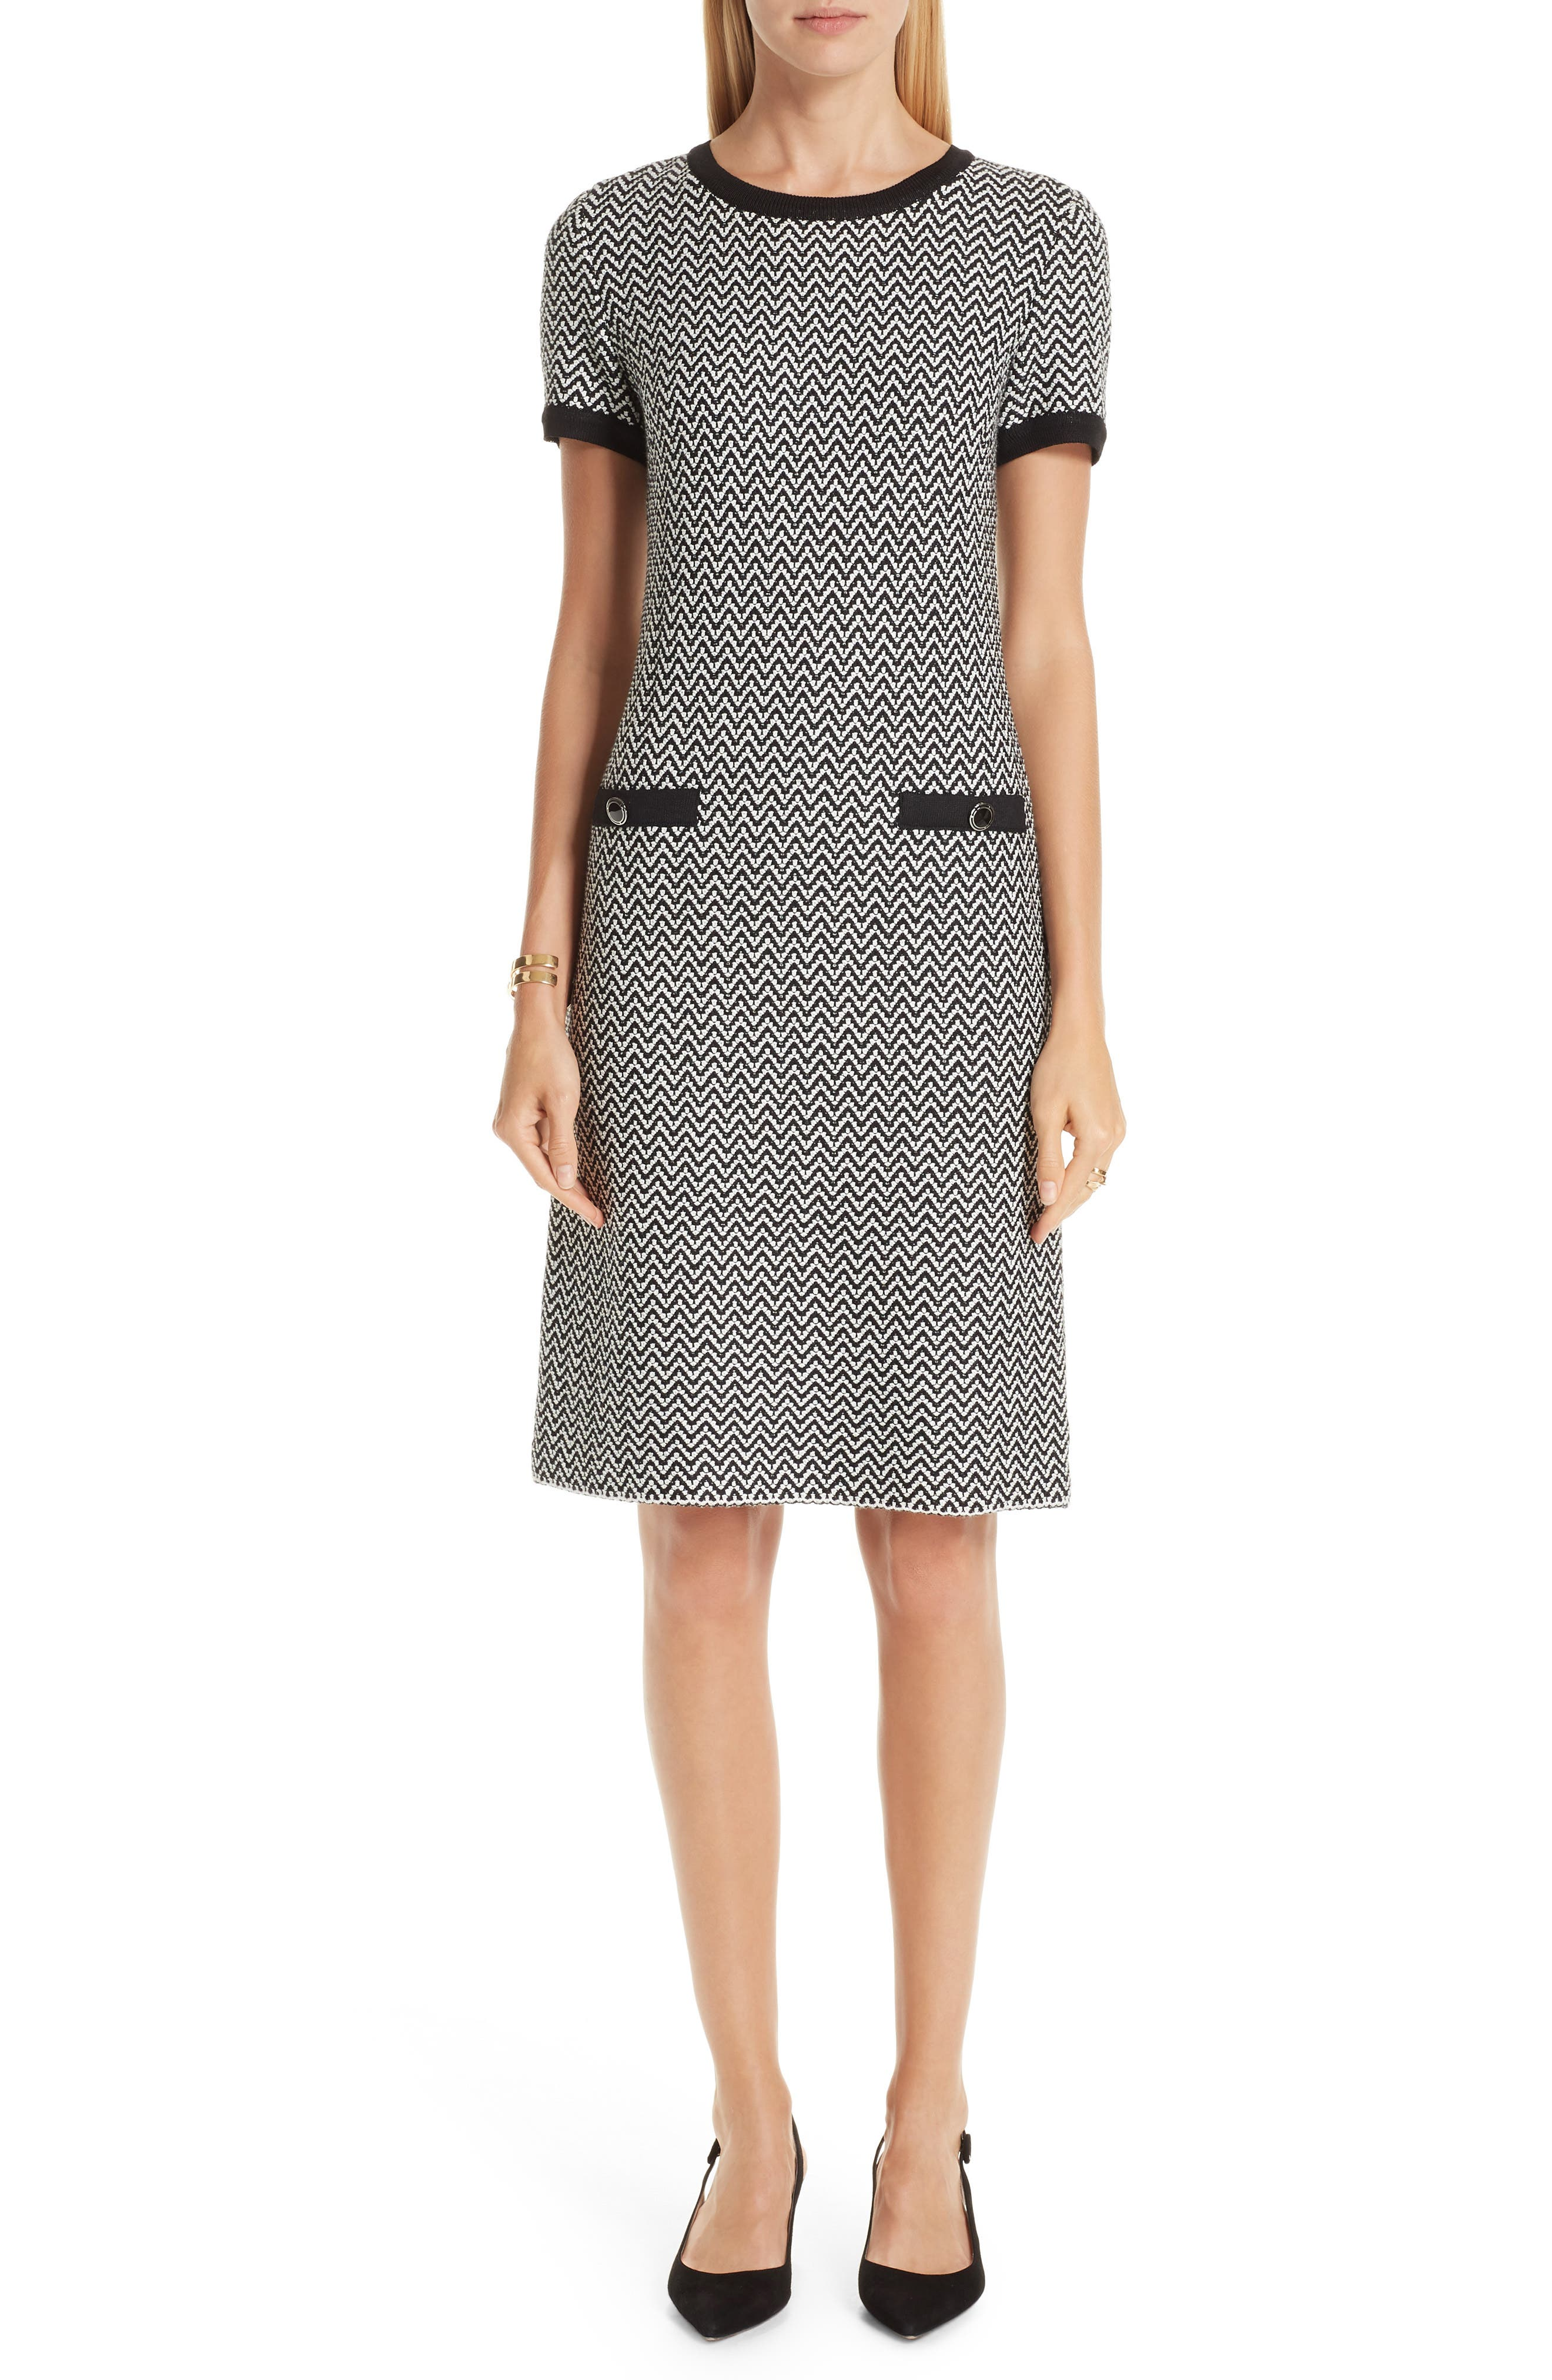 ST. JOHN COLLECTION, Mod Herringbone Knit Dress, Alternate thumbnail 7, color, CAVIAR/ CREAM